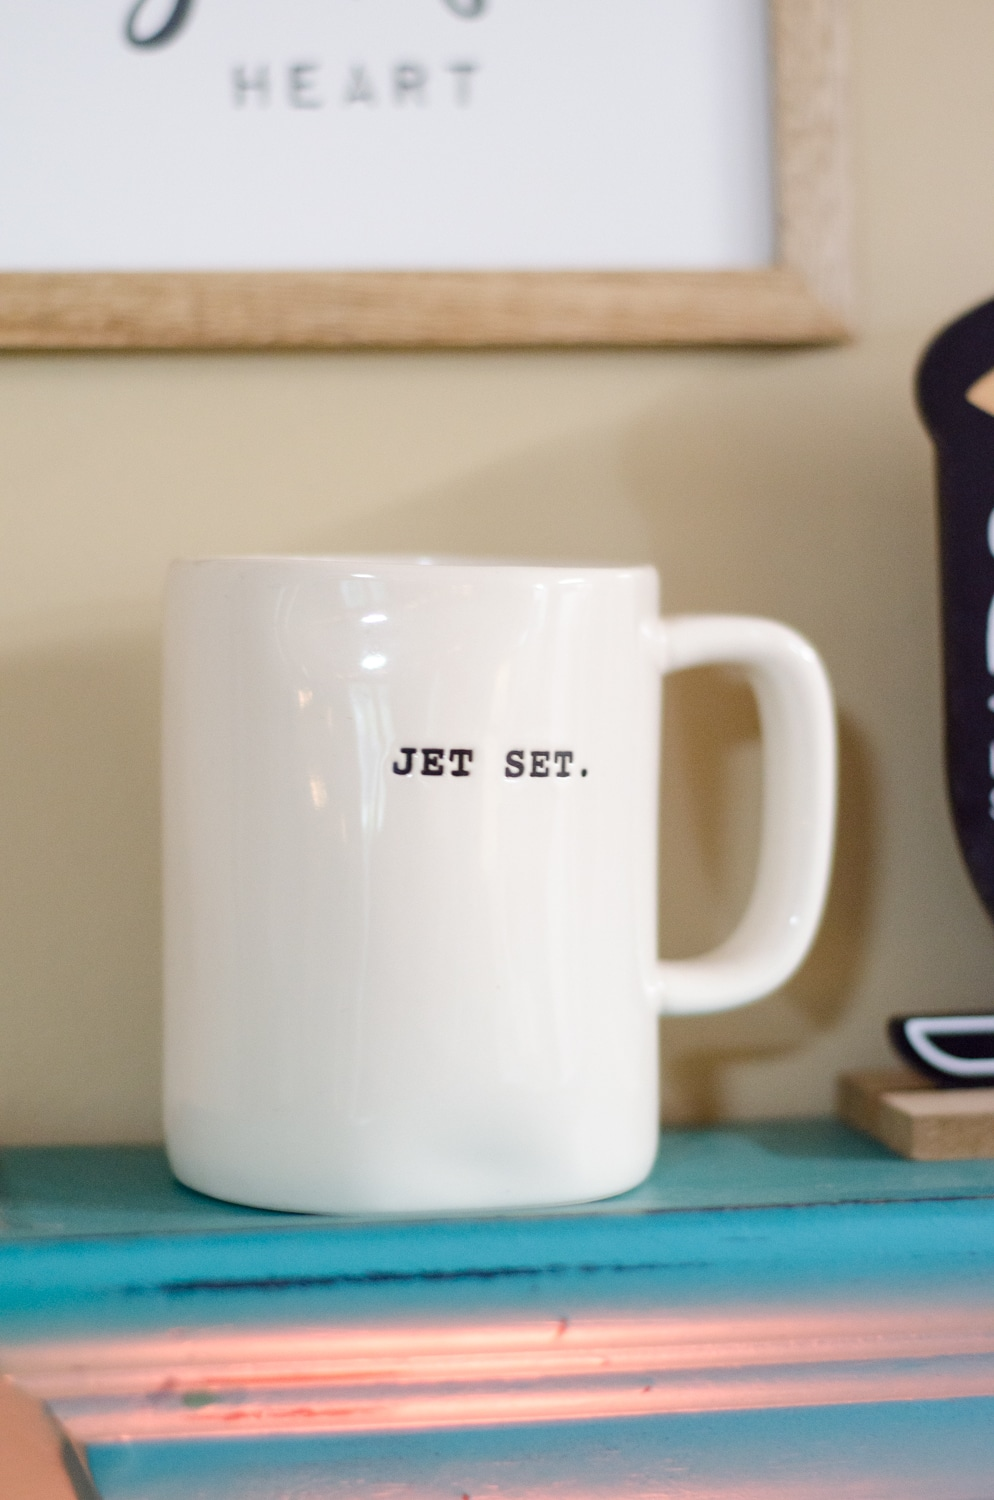 Home Coffee Bar Organization tips for decorating a place to bring joy every morning.